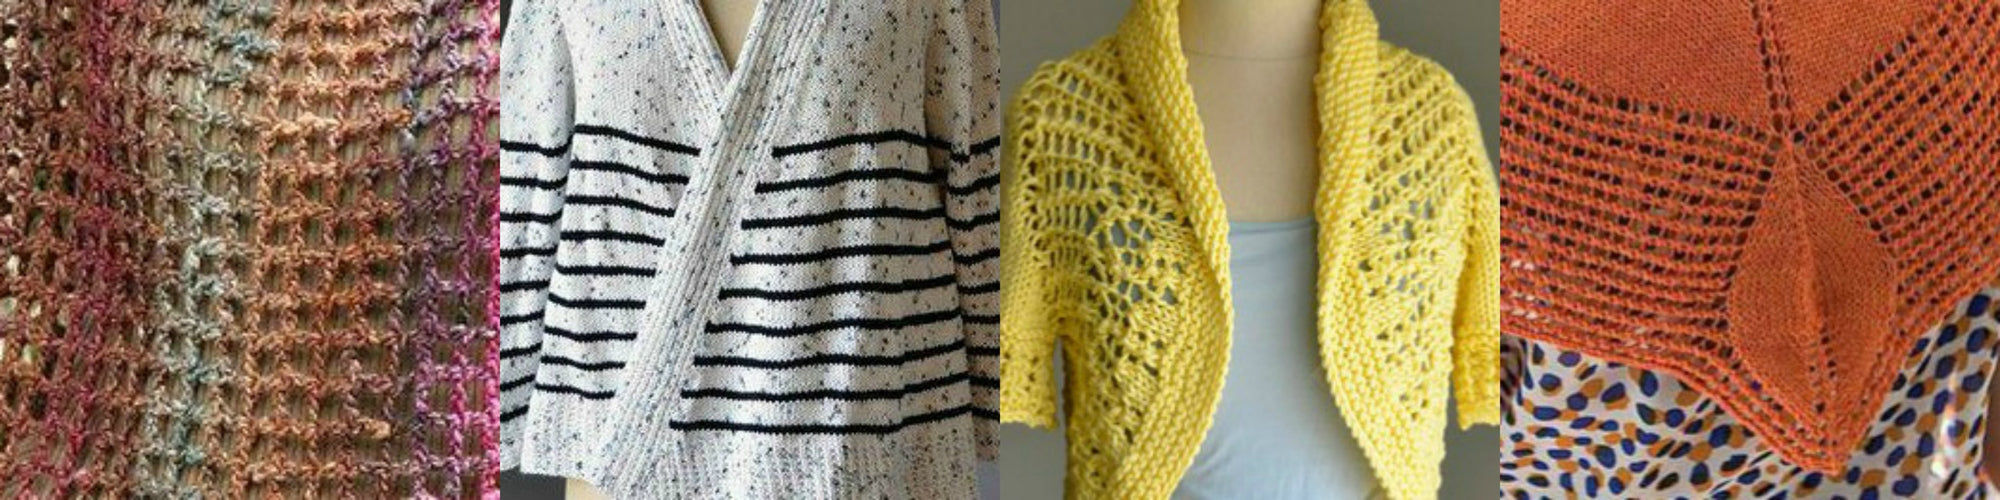 18e0a5ac96922 Top 10 Free Spring Knitting Patterns